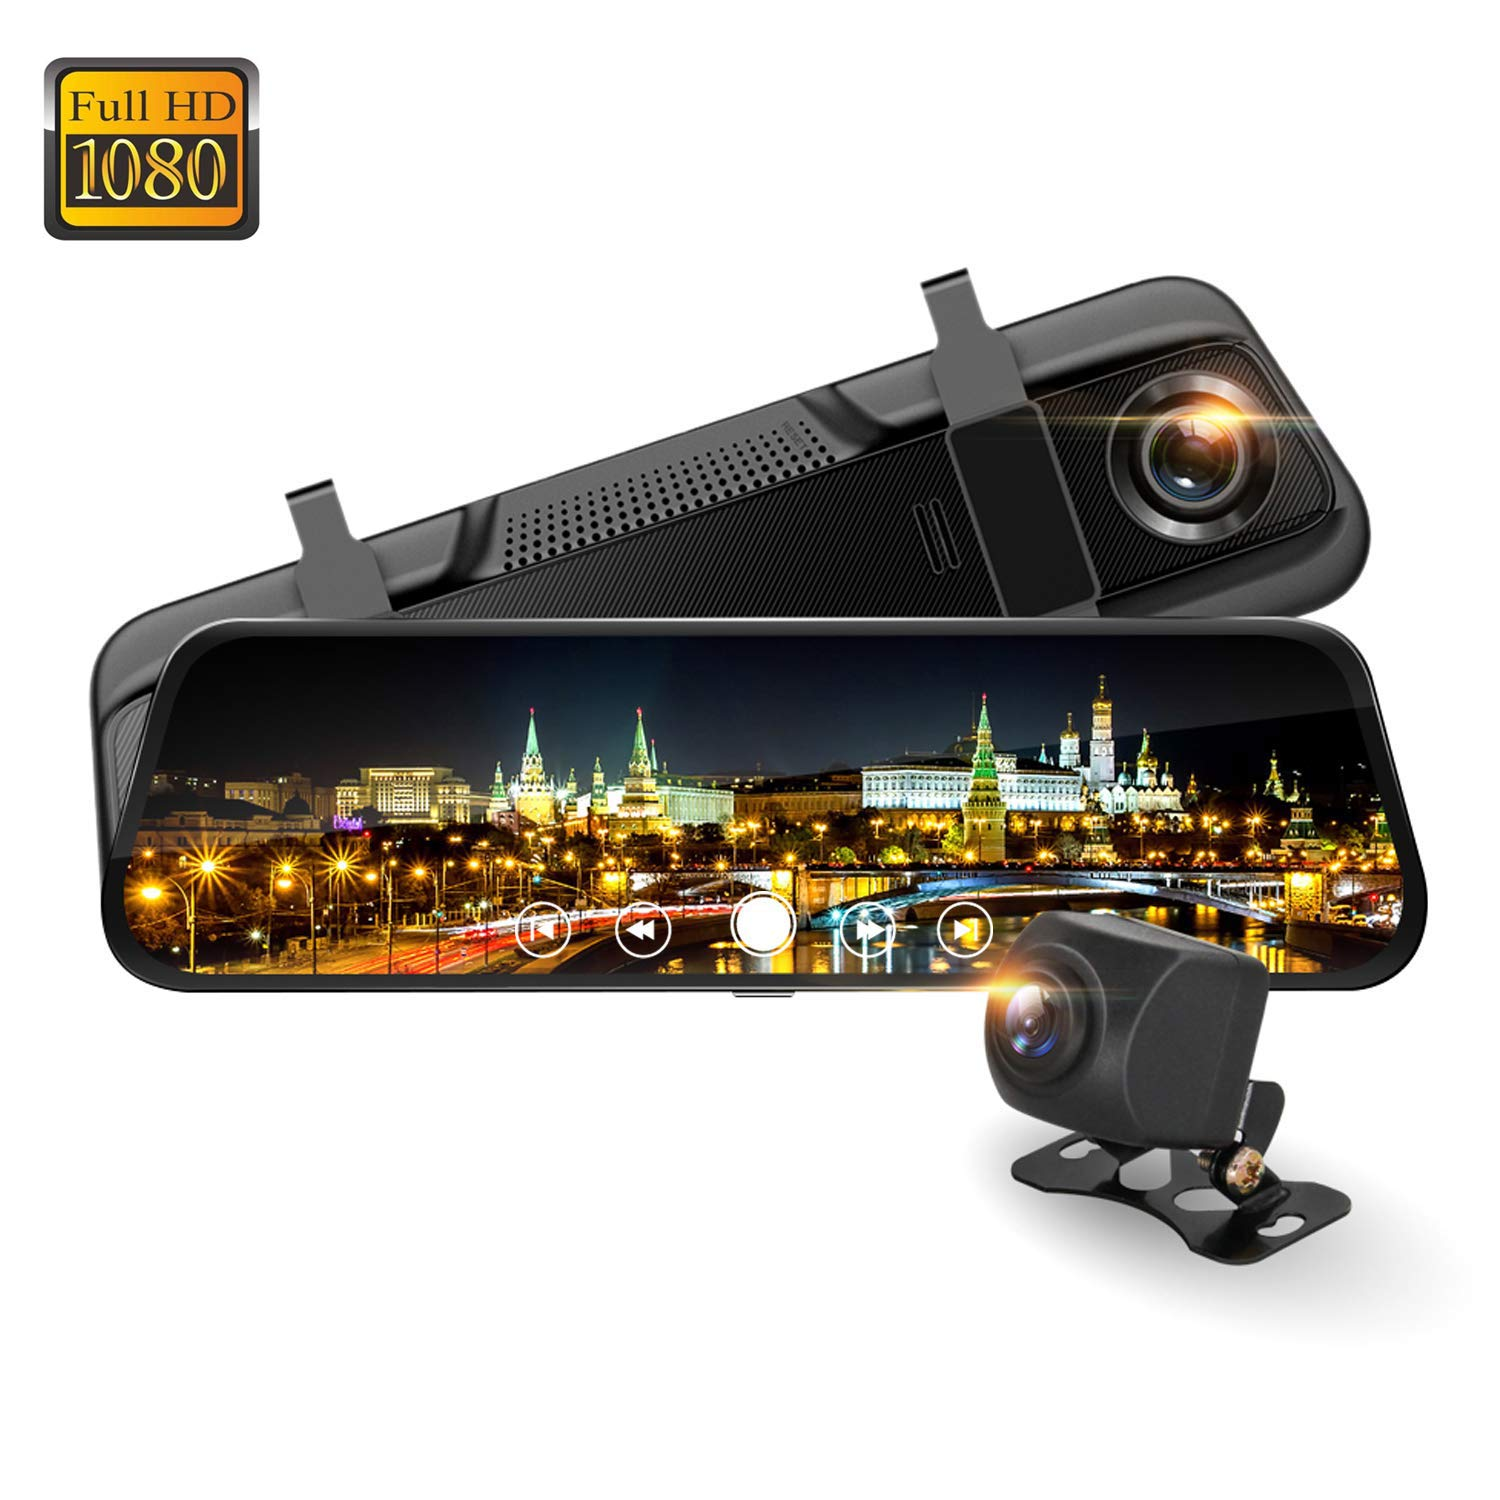 Rear View Camera 9.66'' Mirror Dash Cam, Spedal M8 Full HD 1080P Front and Rear Backup Camera with Dual Wide Angle Lens, Waterproof Rear Camera, Night Vision, G-Sensor and Loop Recording